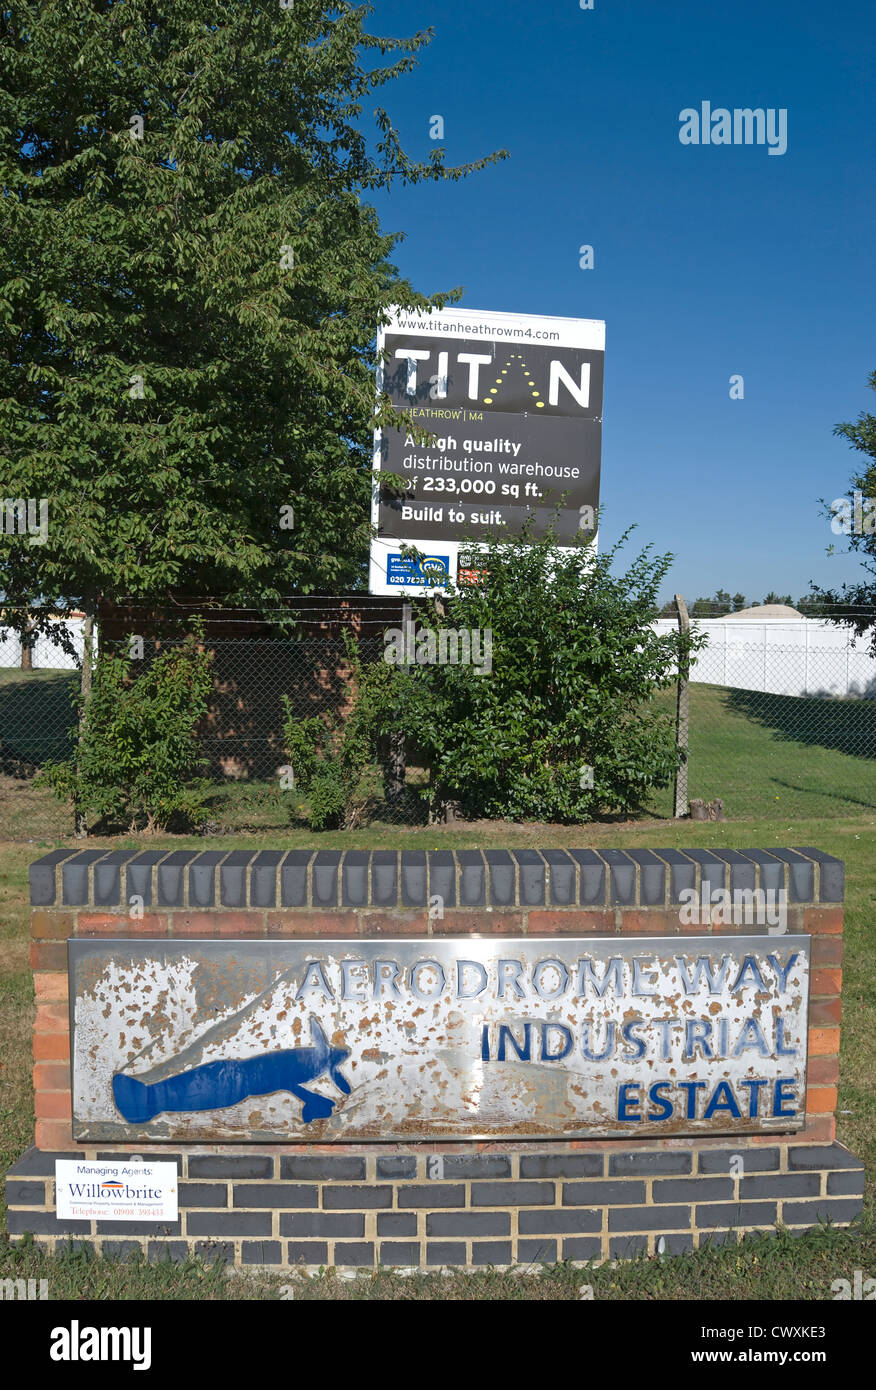 entrance sign for aerodrome industrial estate, cranford, middlesex, england, which occupies the former site of heston - Stock Image